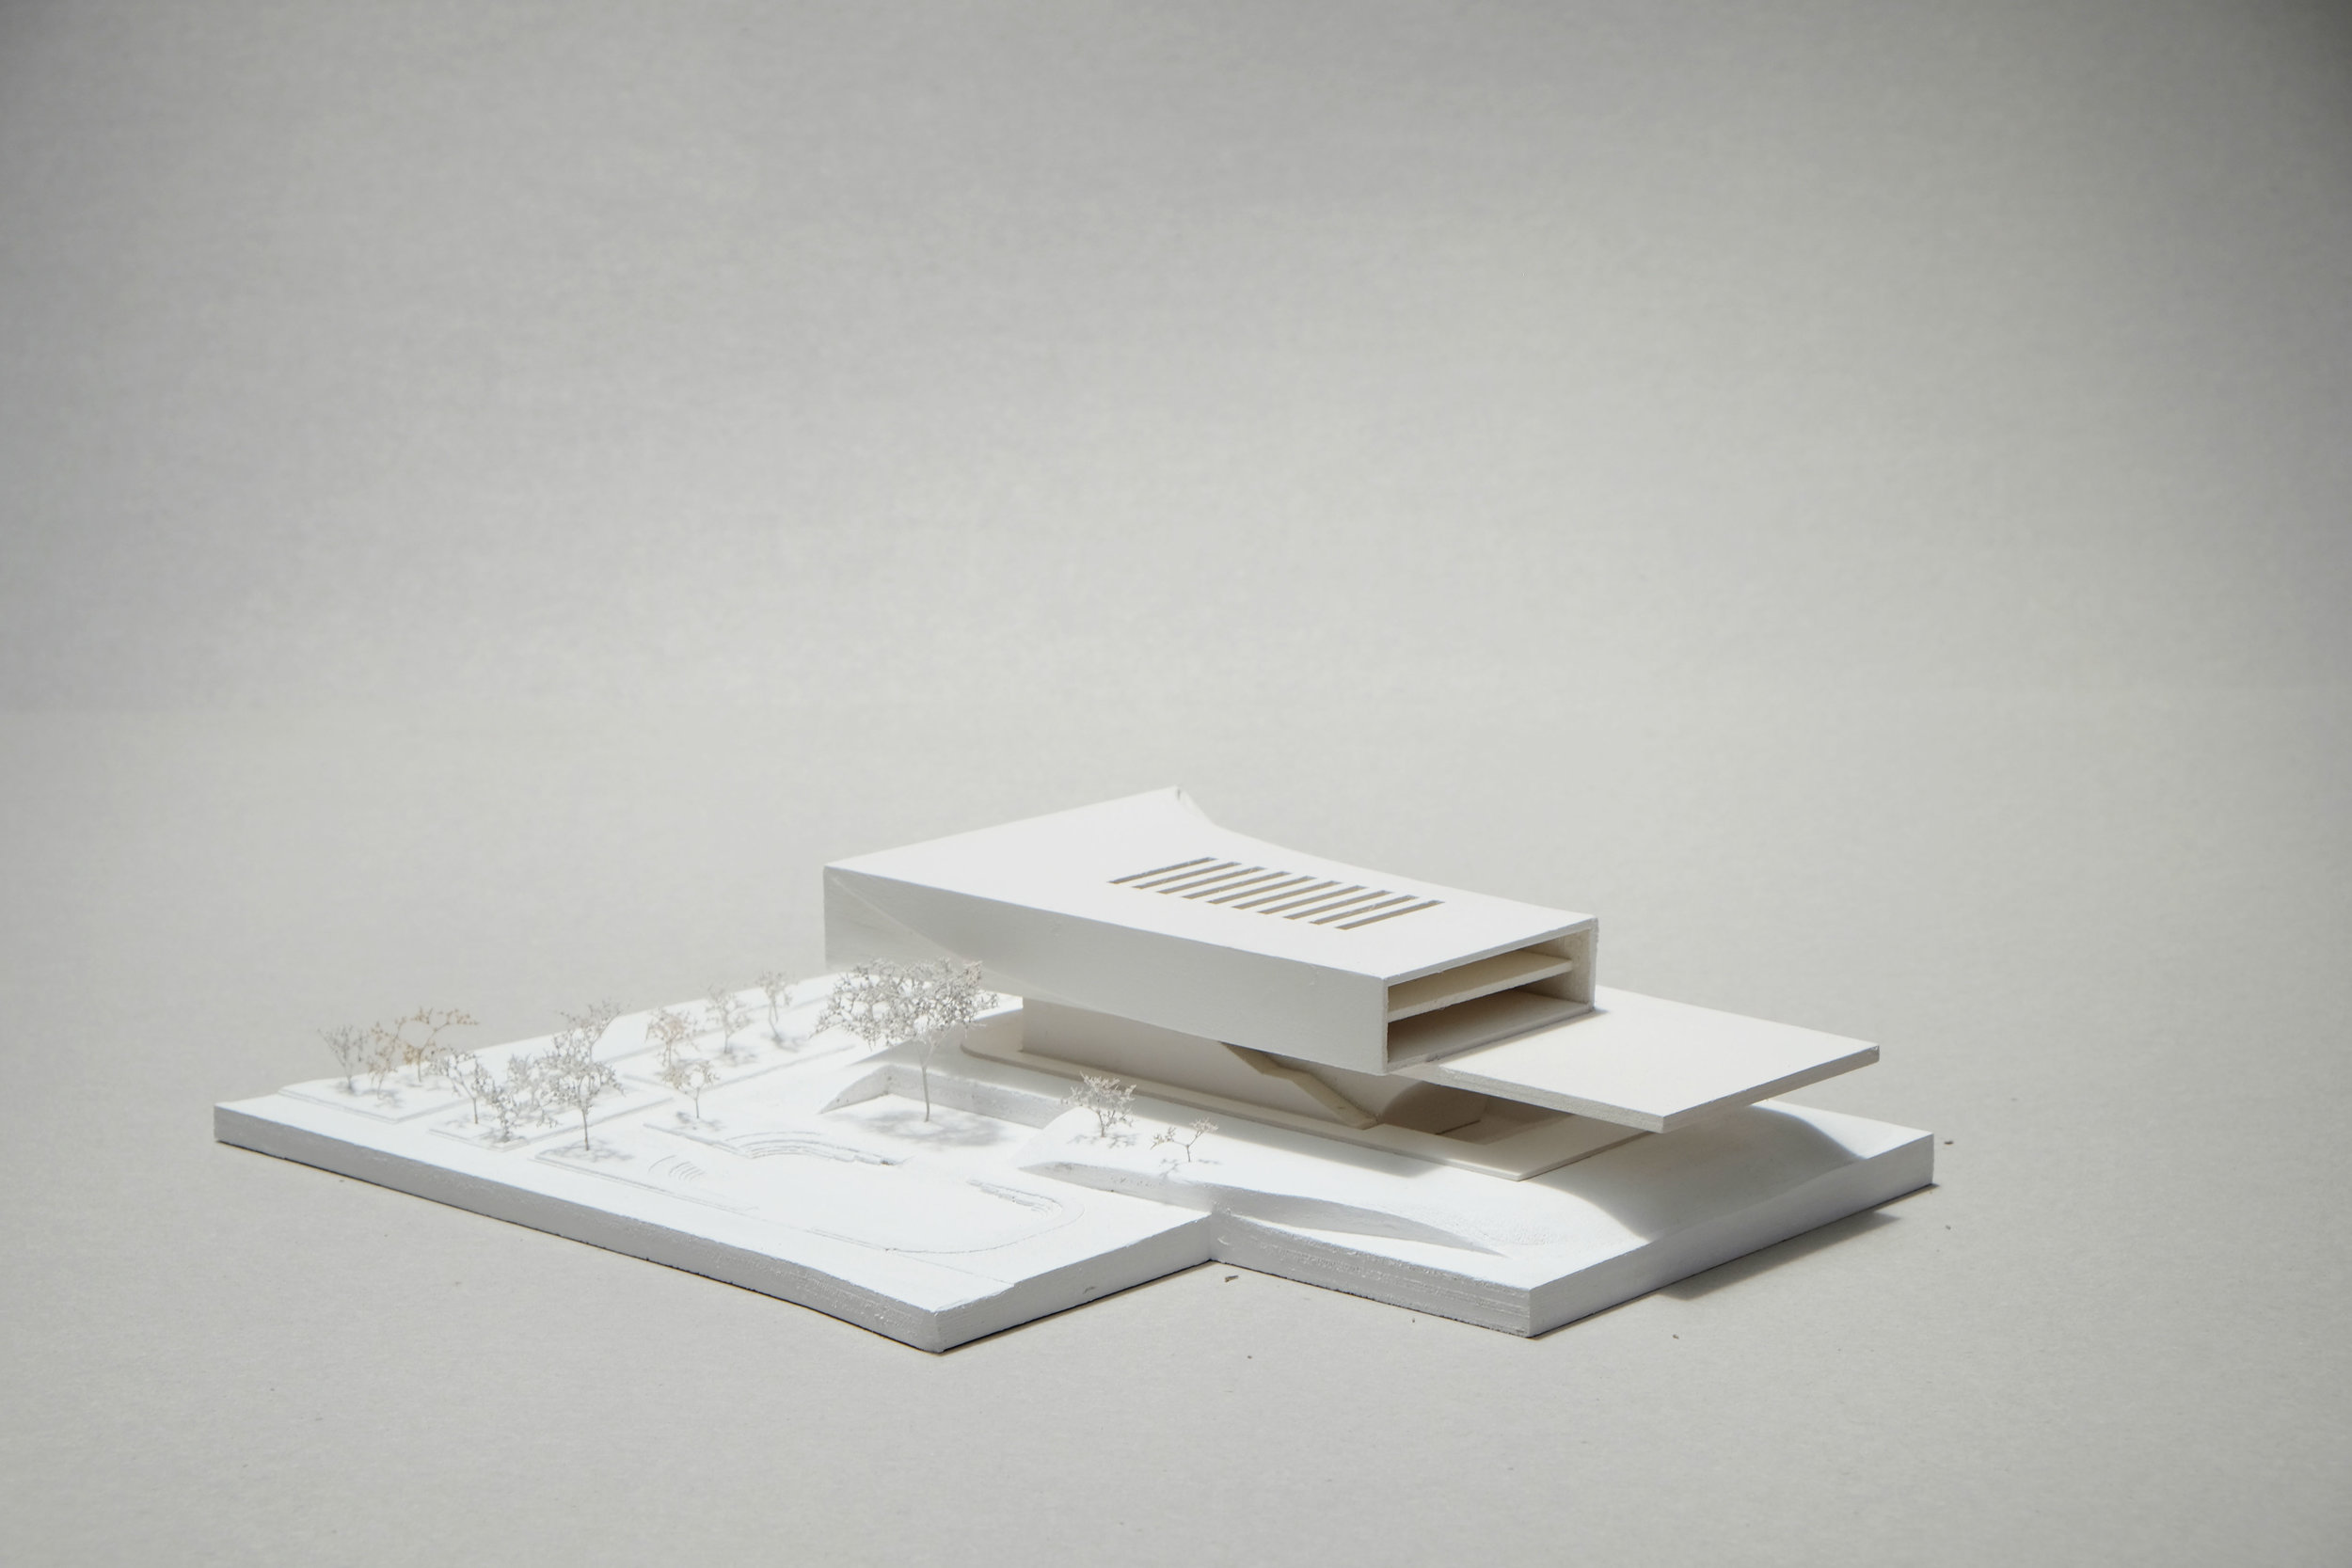 Andrew+Burns+Berlin+competition+model+1500+architecture+model+make+models+sydney+3D+printing+cnc+milling+3.jpg